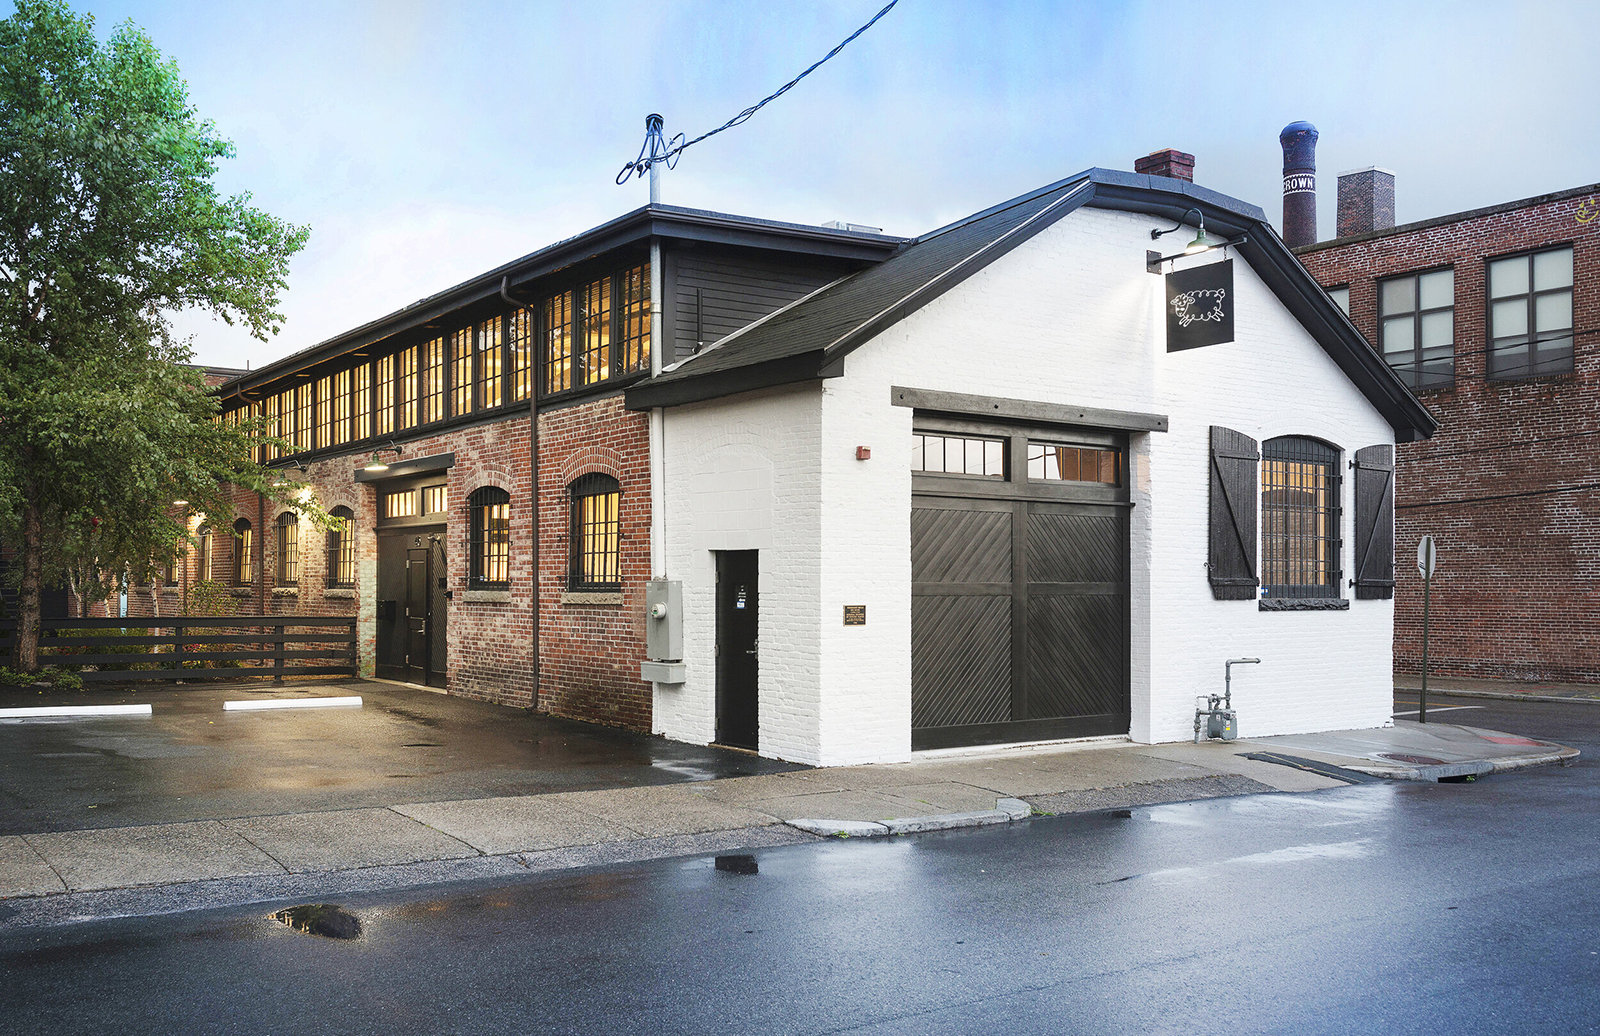 Dye House is set inside a 161-year-old textile mill that has been given a new look for its transformation into a hotel.